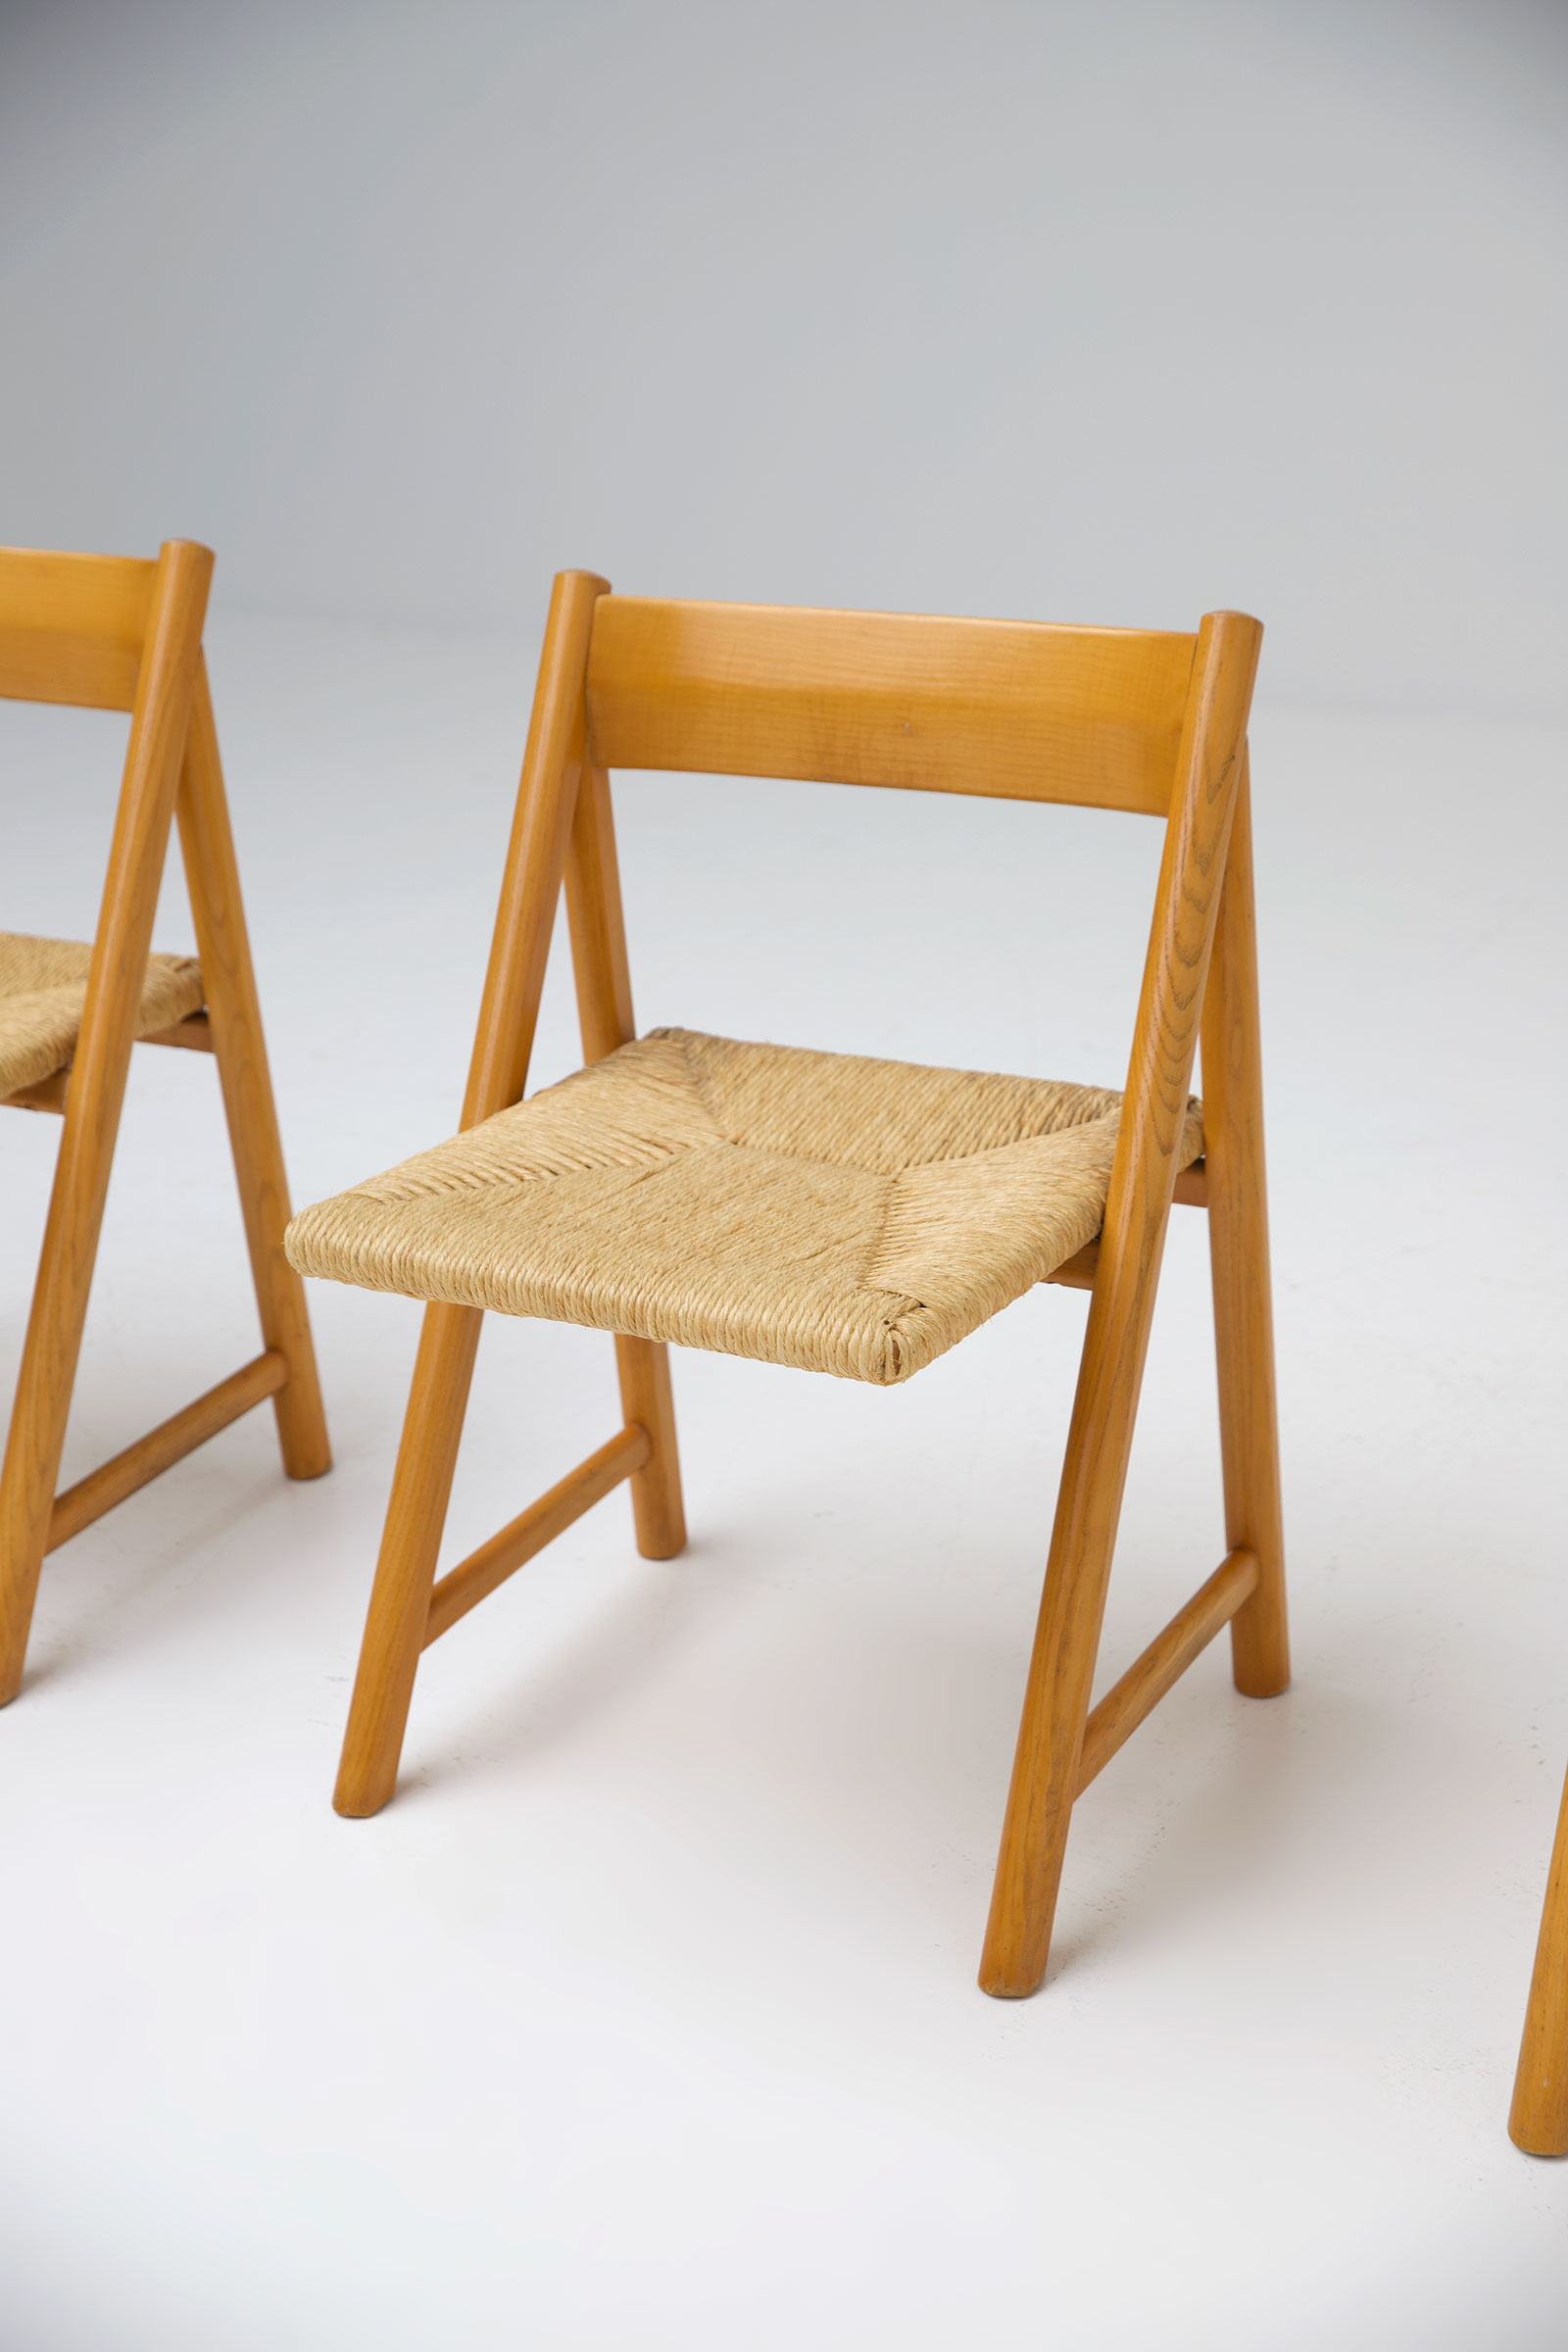 1960s Woven Cane Chairsimage 7